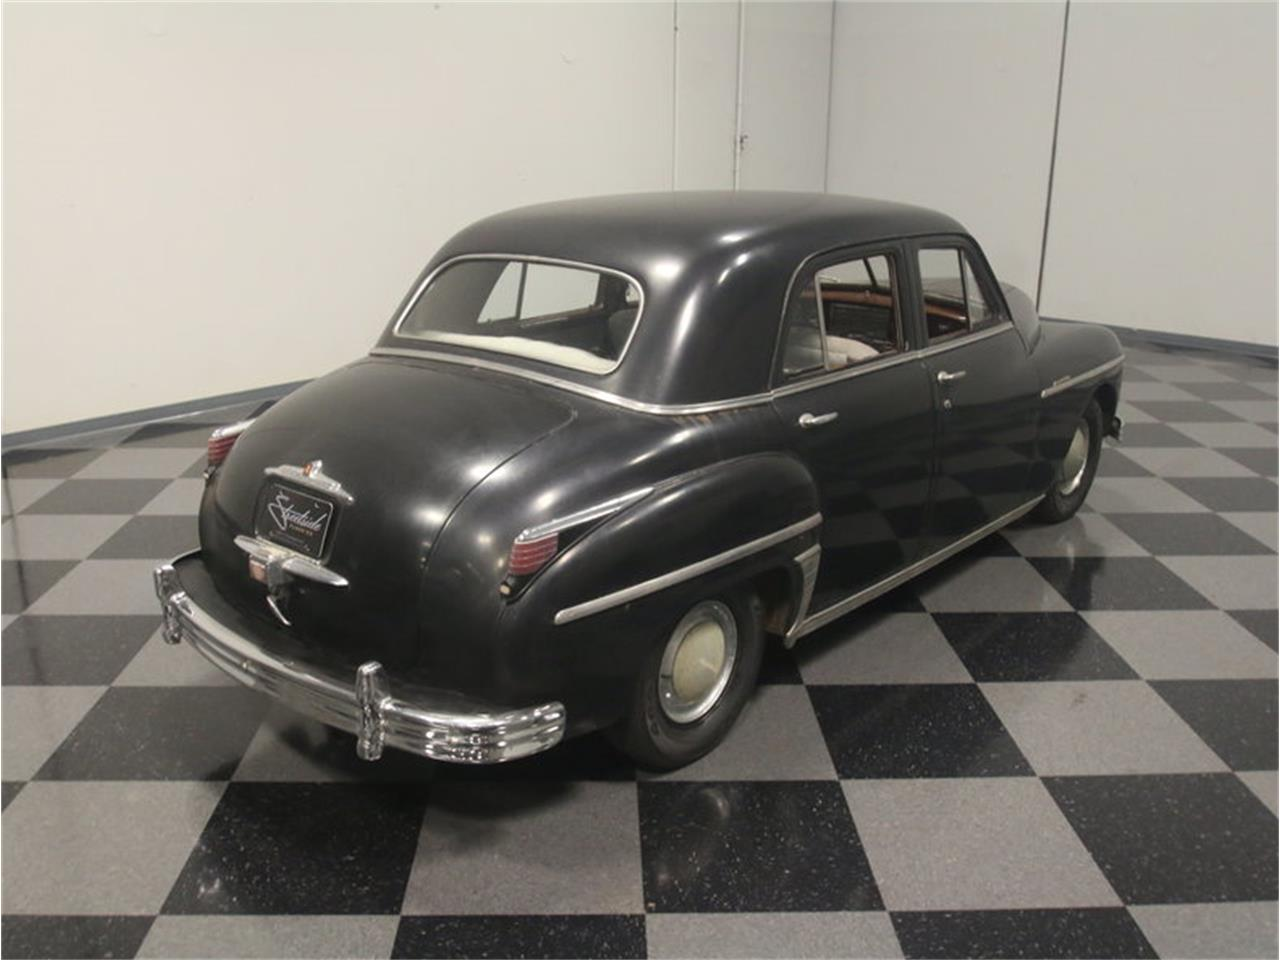 Large Picture of 1949 Plymouth Special Deluxe located in Georgia - $8,995.00 - L551